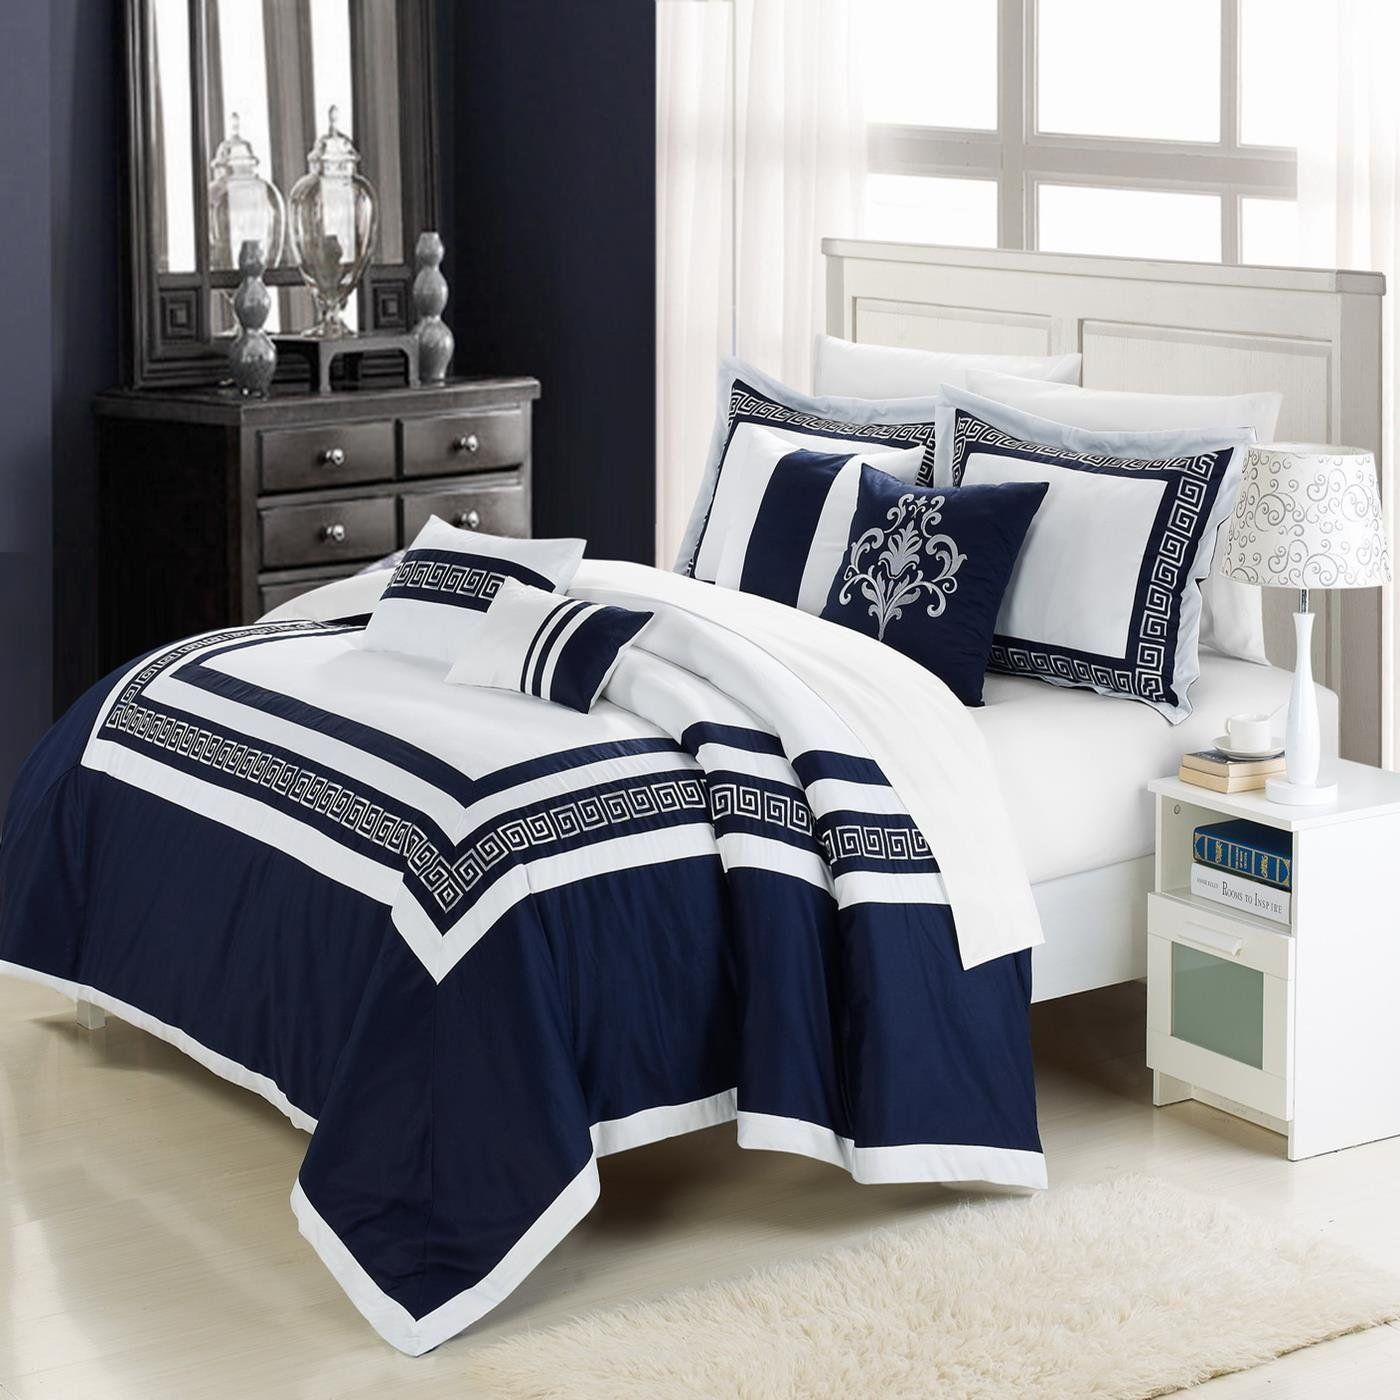 White Blue Comforter Sets King In 2020 Blue Comforter Sets Blue Bedroom Blue And White Comforter